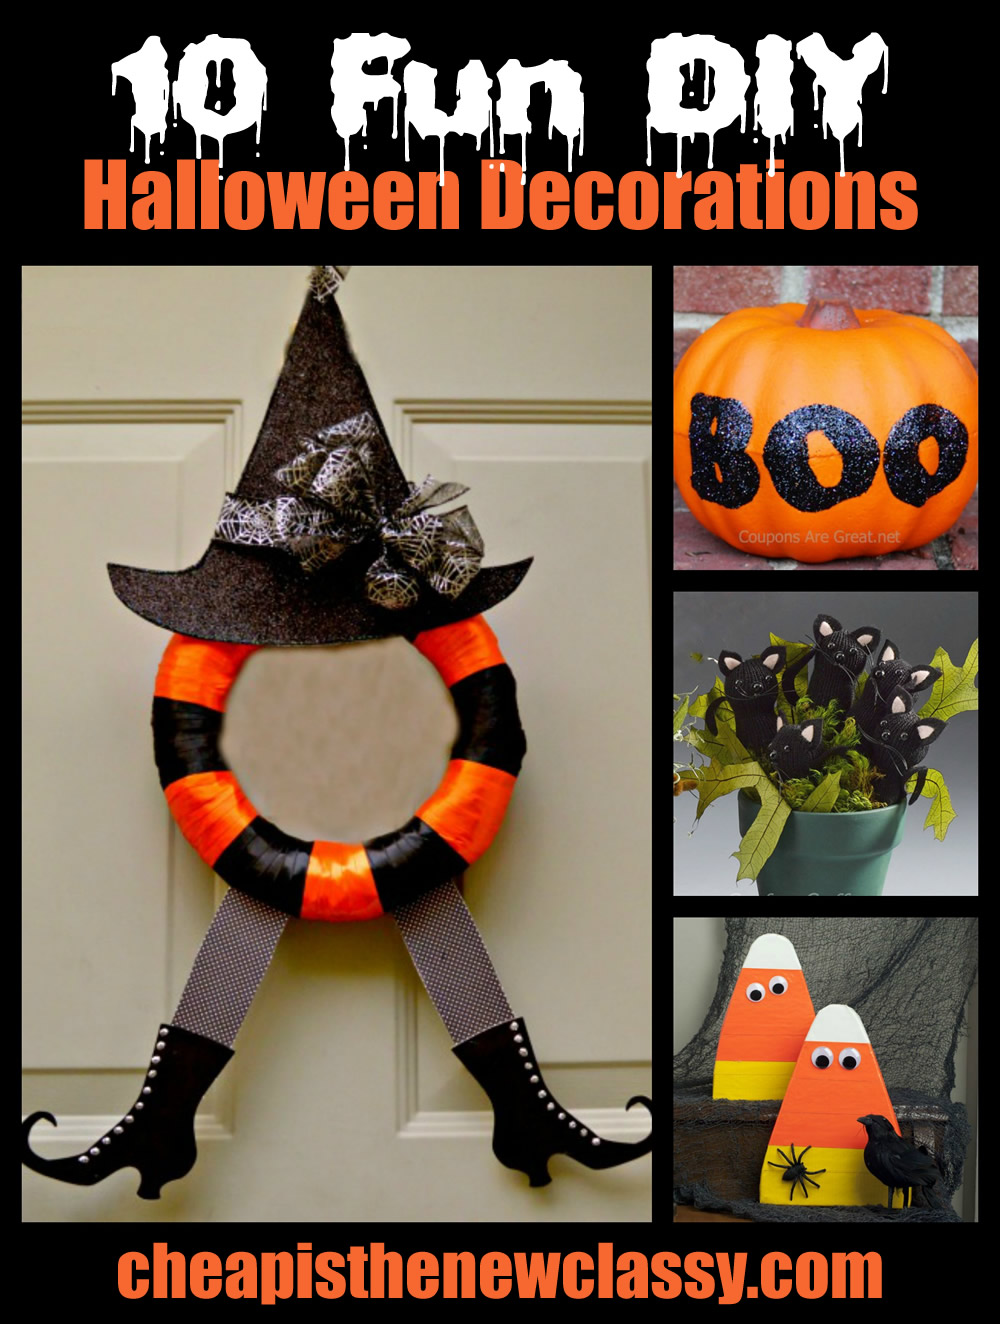 10 fun and spooky diy halloween decorations. Black Bedroom Furniture Sets. Home Design Ideas